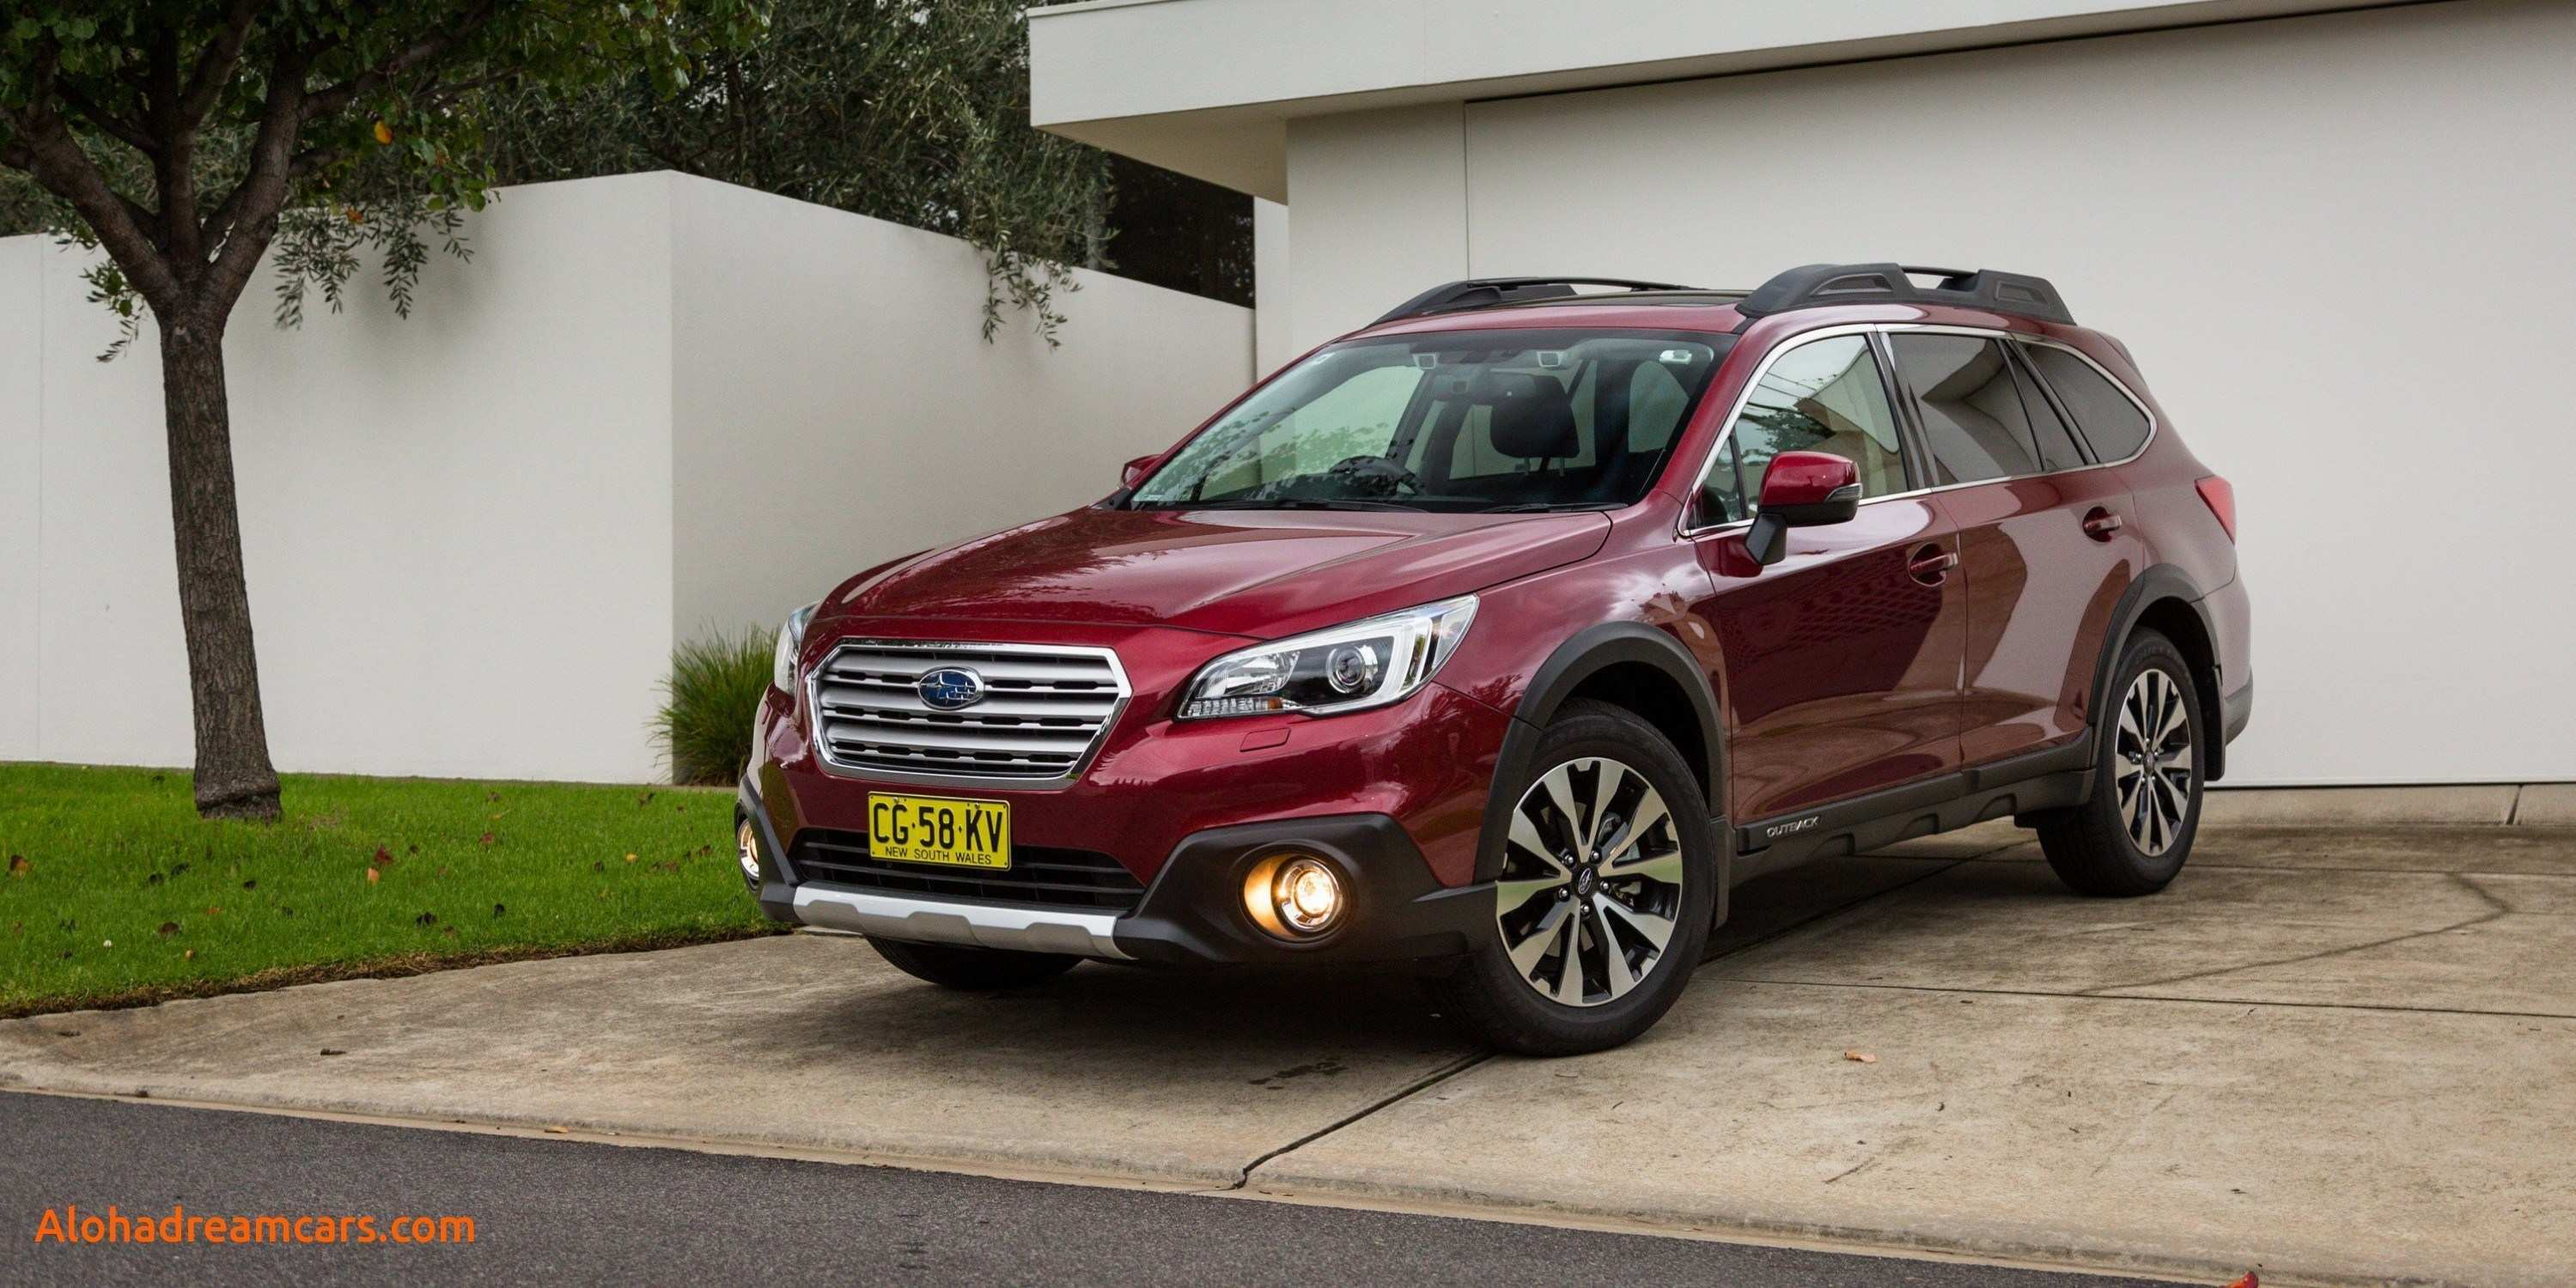 71 Concept of The Release Date Of Subaru 2019 Forester Picture Release Date And Review Pictures with The Release Date Of Subaru 2019 Forester Picture Release Date And Review